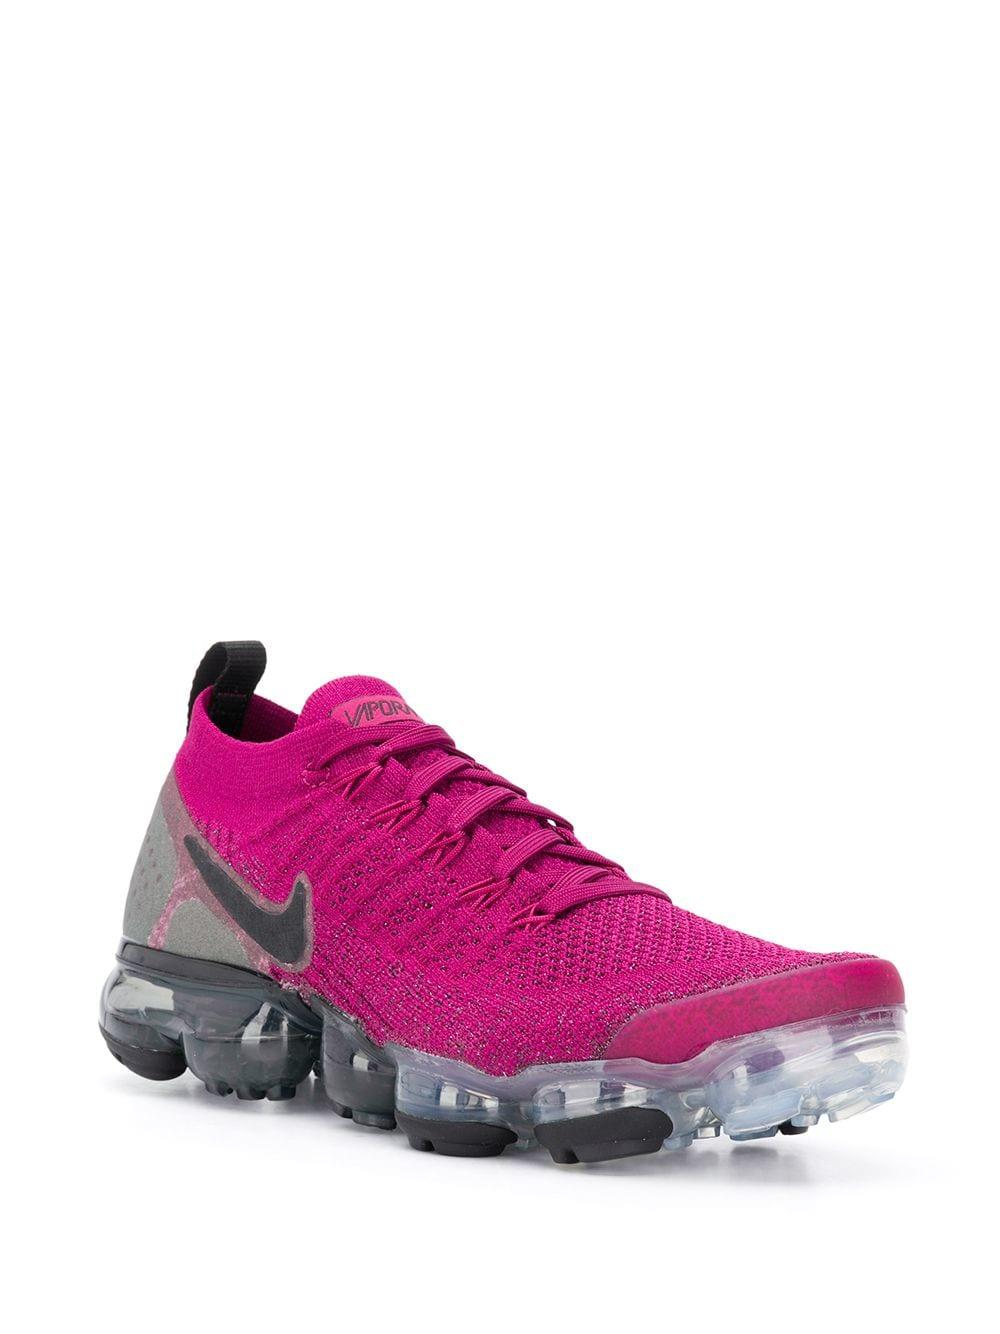 cc0f4eb522bc7 Lyst - Nike Air Vapormax Sneakers in Pink